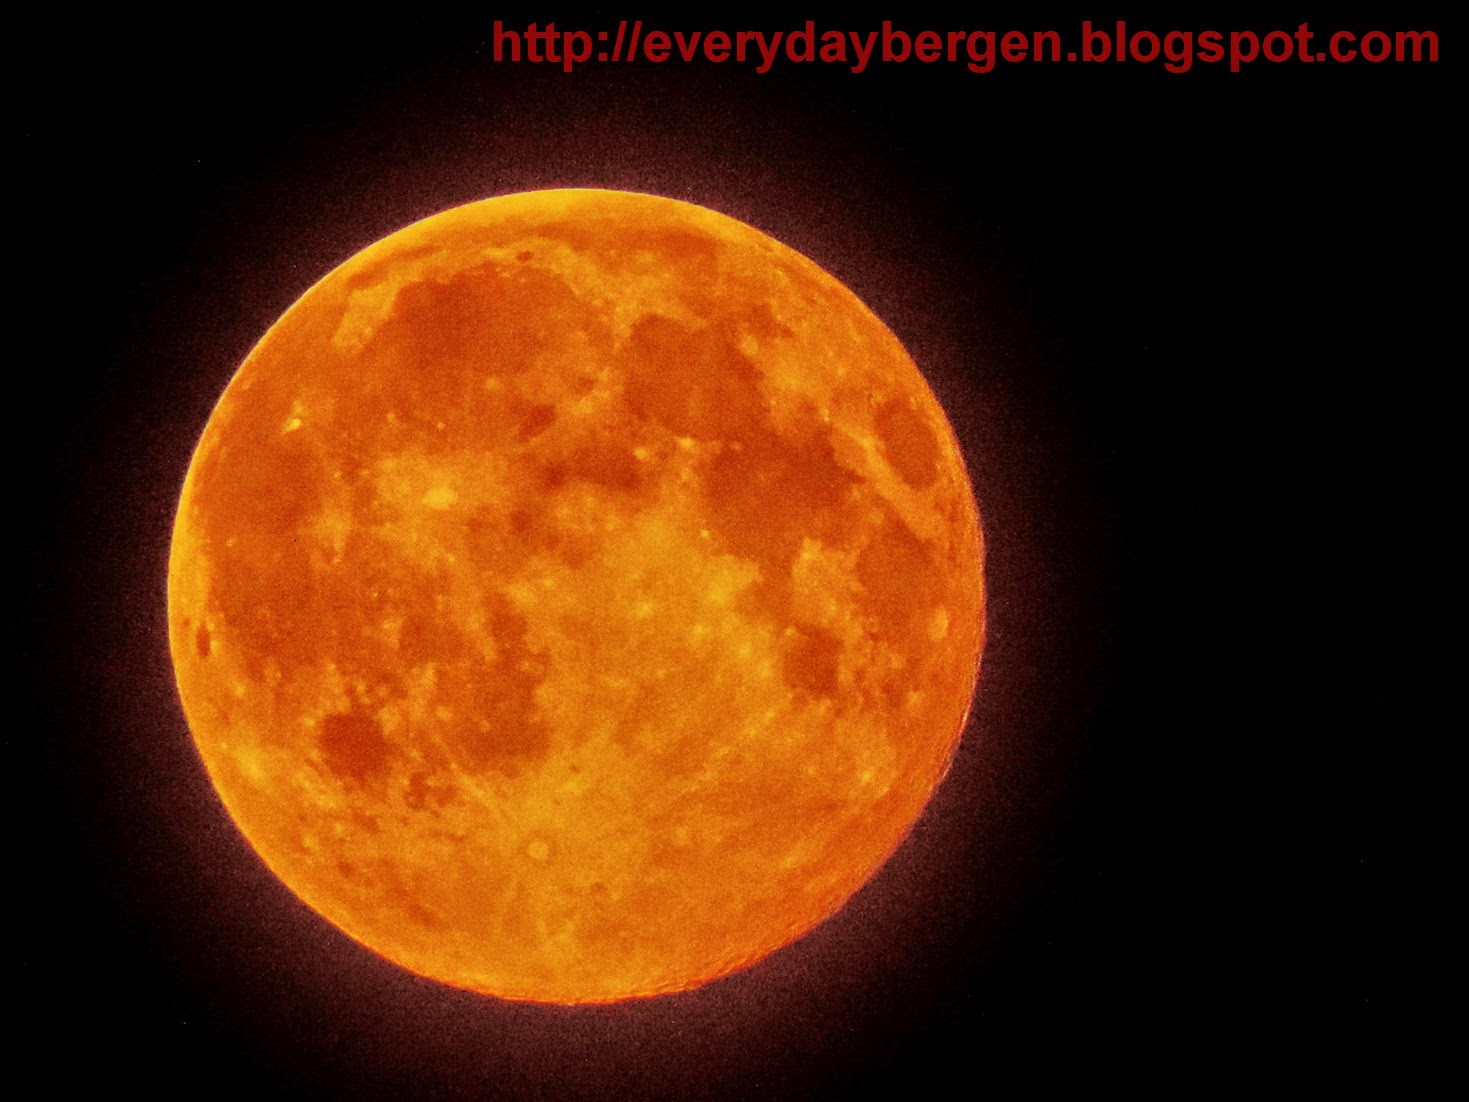 Super moon over Bergen.